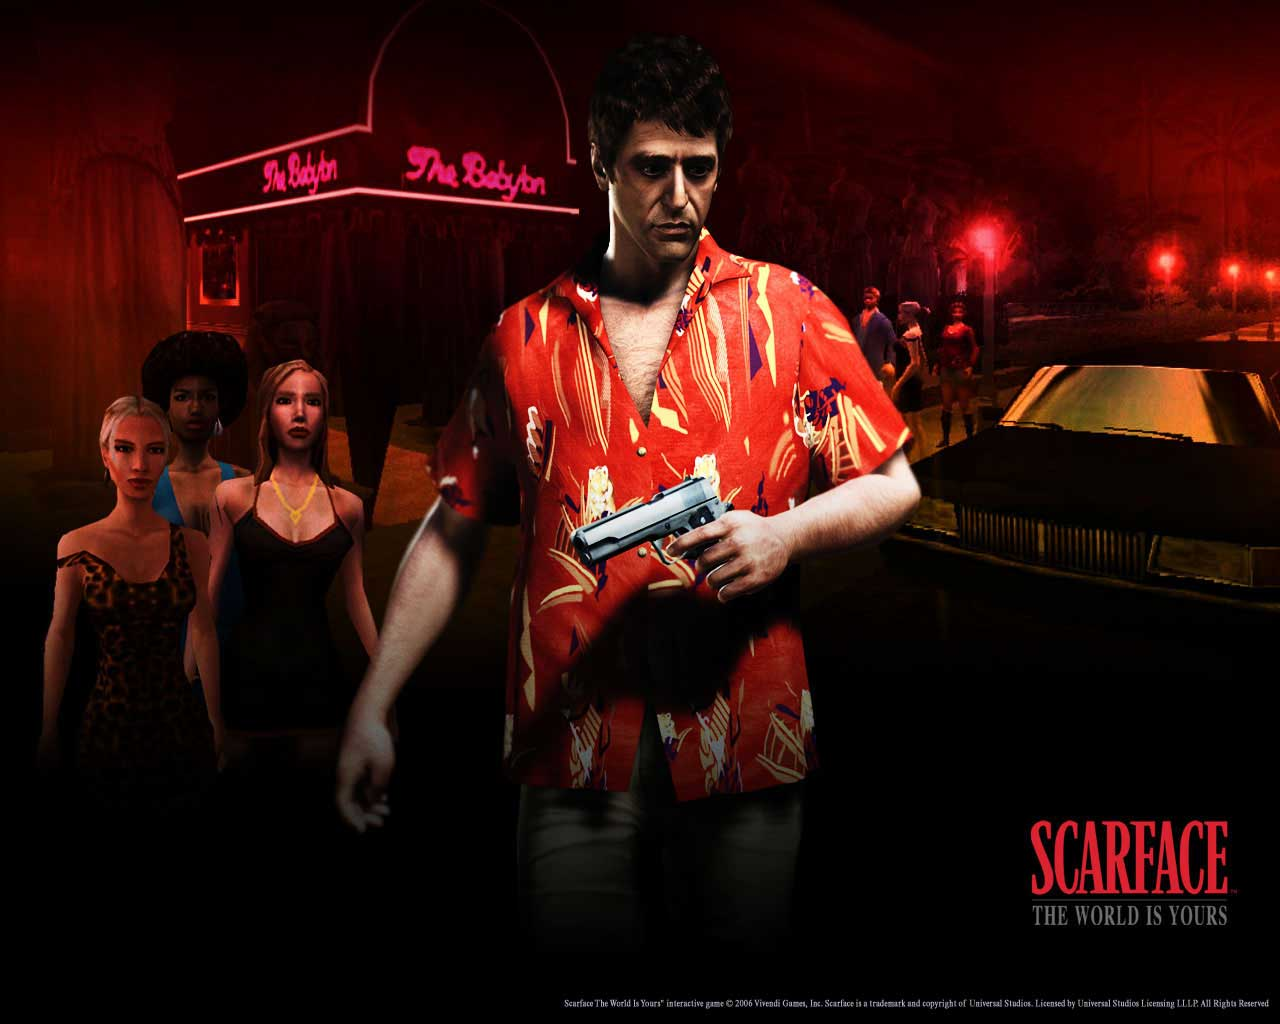 The Sierra Chest - Scarface: The World Is Yours: Wallpapers / themes